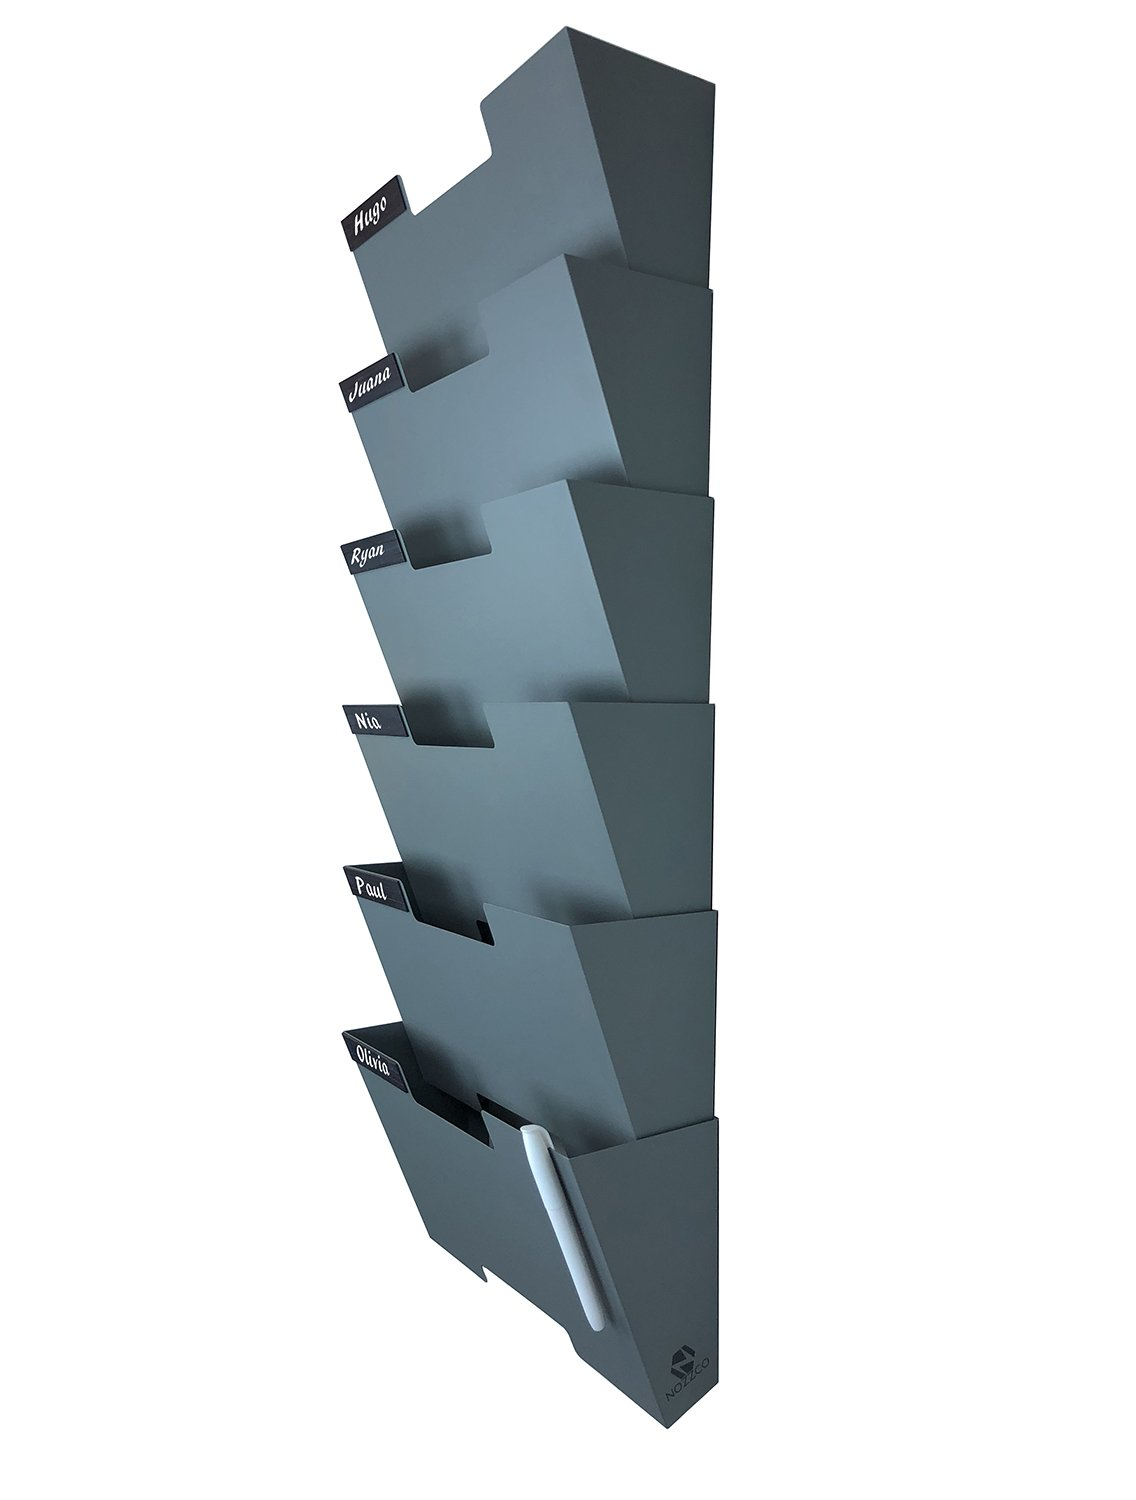 Gray Wall Mount Hanging File Holder Organizer 6 Pack | Durable Steel Rack, Solid, Sturdy & Wide | for Letters, Files, Magazines & More | Organize The Desktop, Declutter Your Office - Nozzco